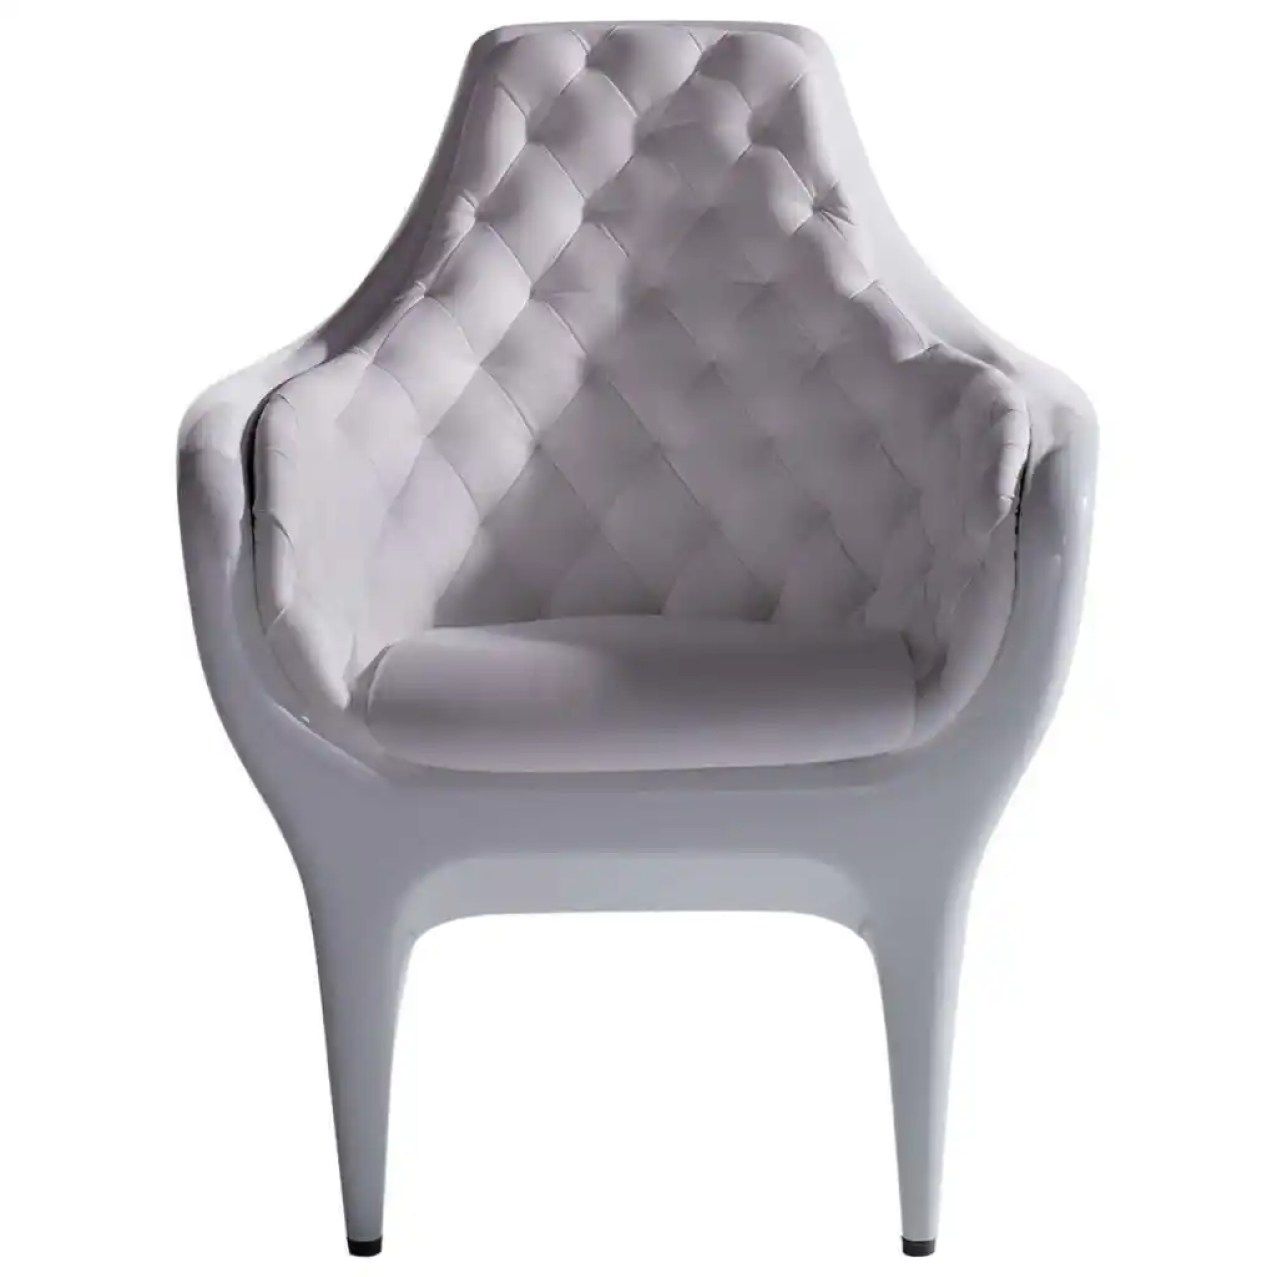 Armchair in white lacquer and white capitone leather by Jaime Hayon